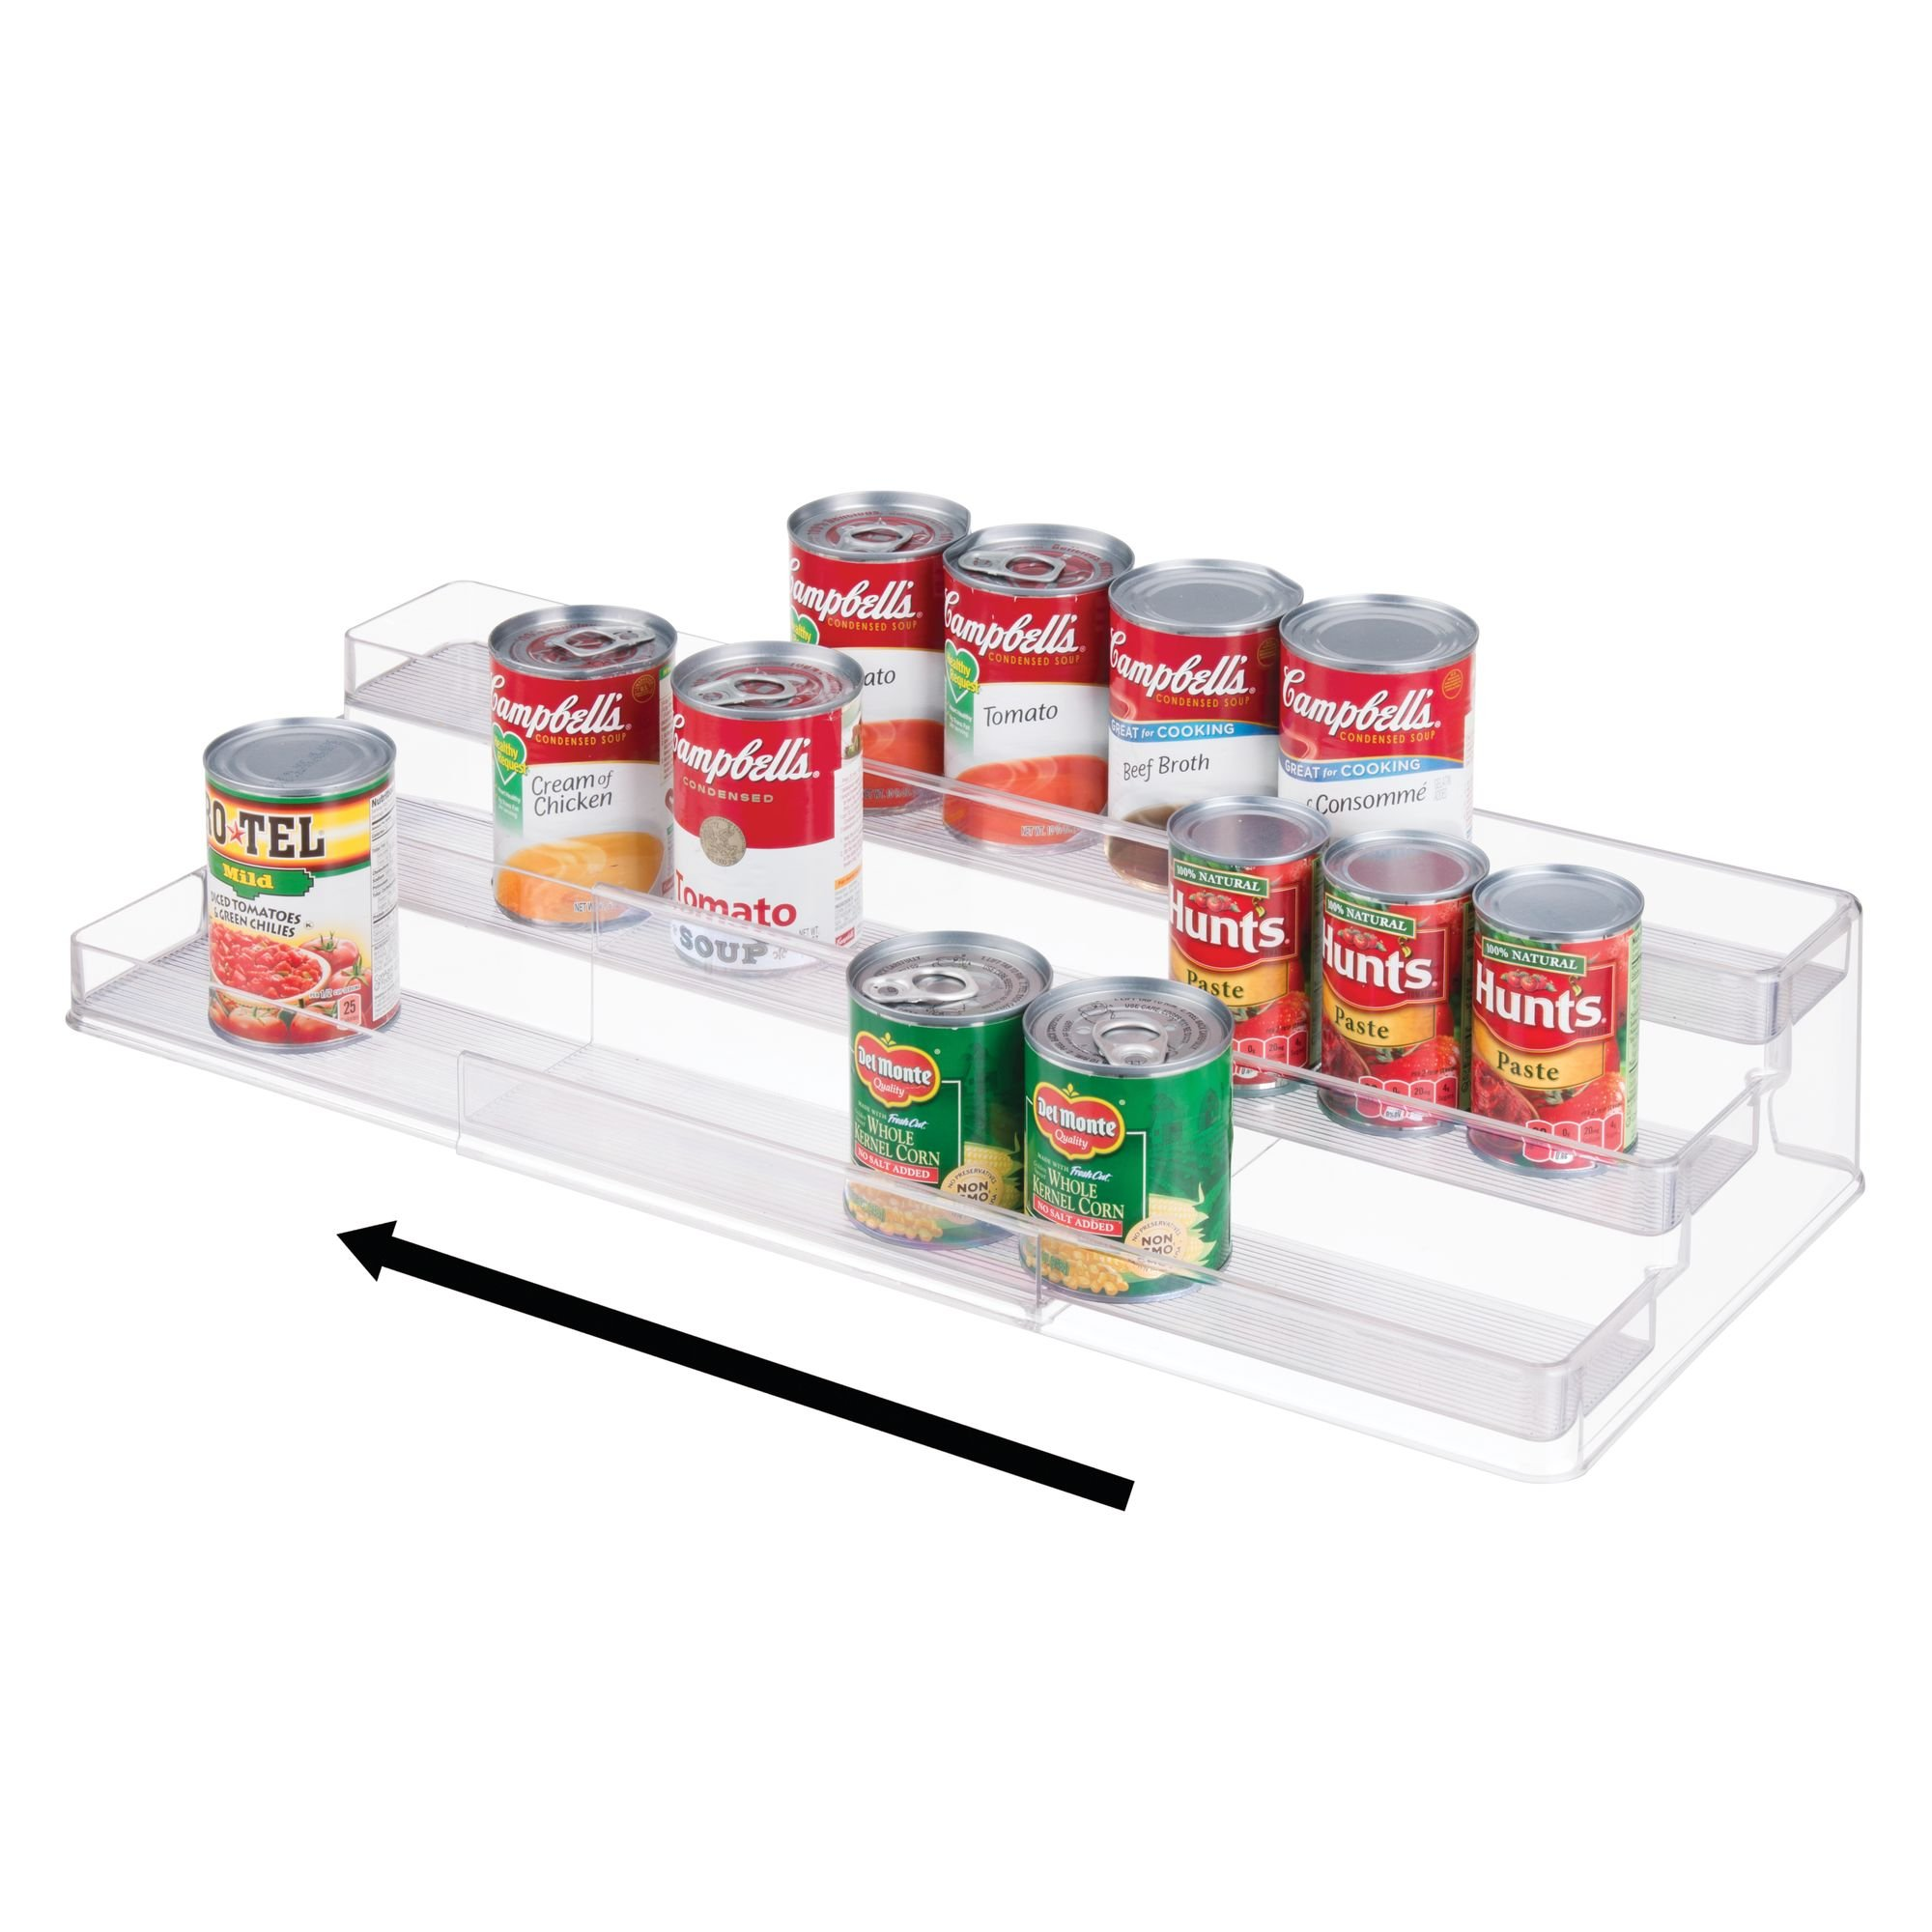 mDesign Adjustable, Expandable Large Organizer/Spice Rack Holder for Kitchen Cabinet, Pantry, Shelf, Cupboard - 3 Tier Storage: Food Safe, BPA Free - Expands from 16.75'' up to 32'' Wide, Empty, Clear